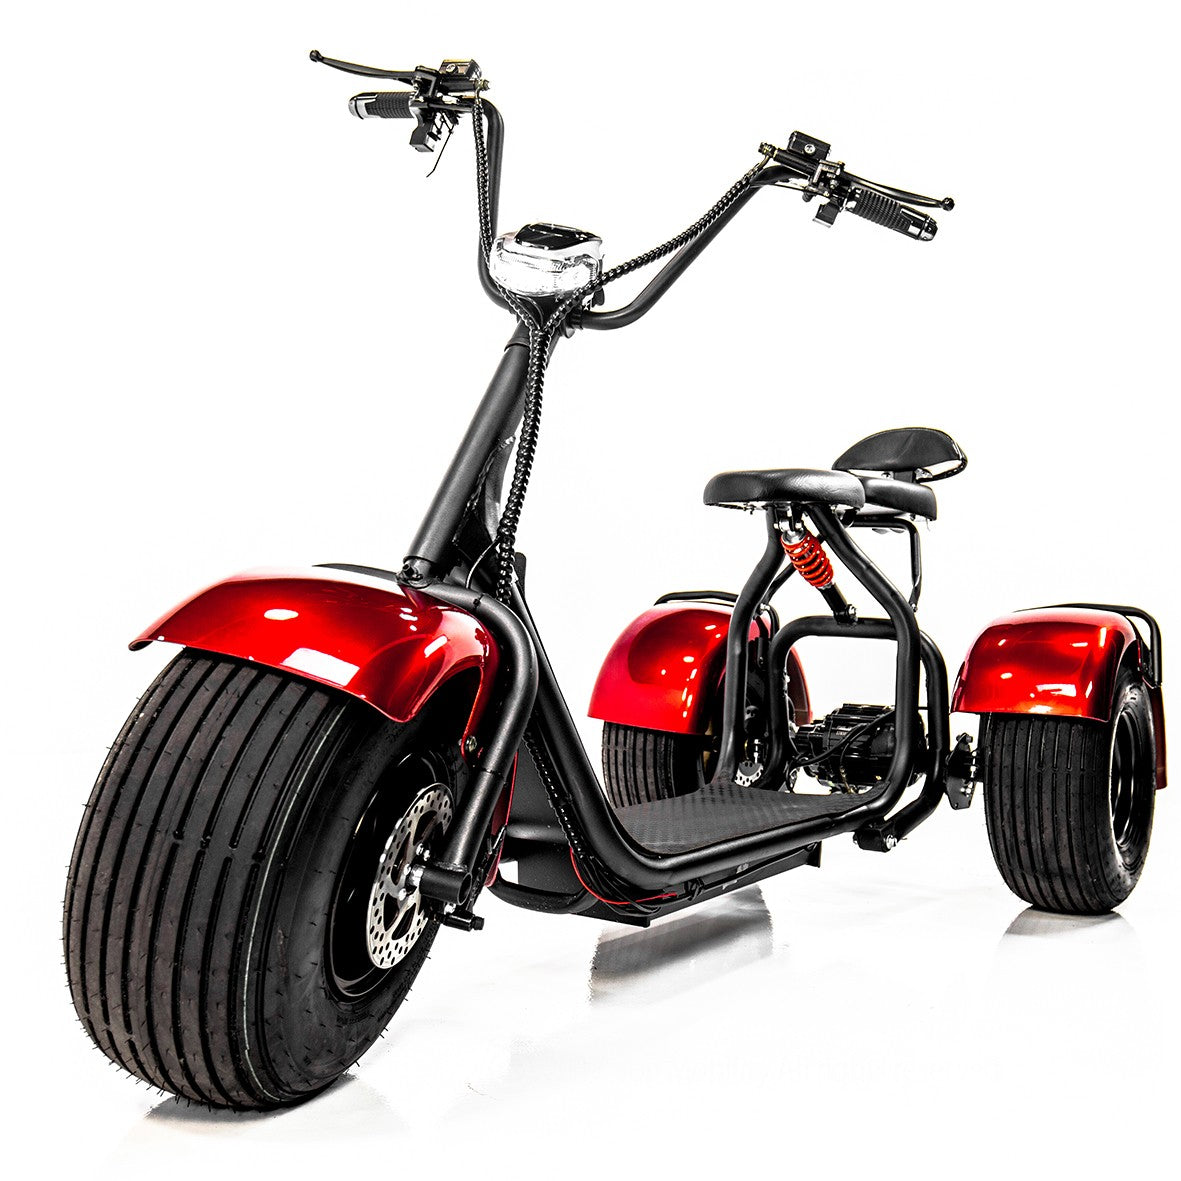 EW-21 Electric 3-Wheel Chopper Scooter